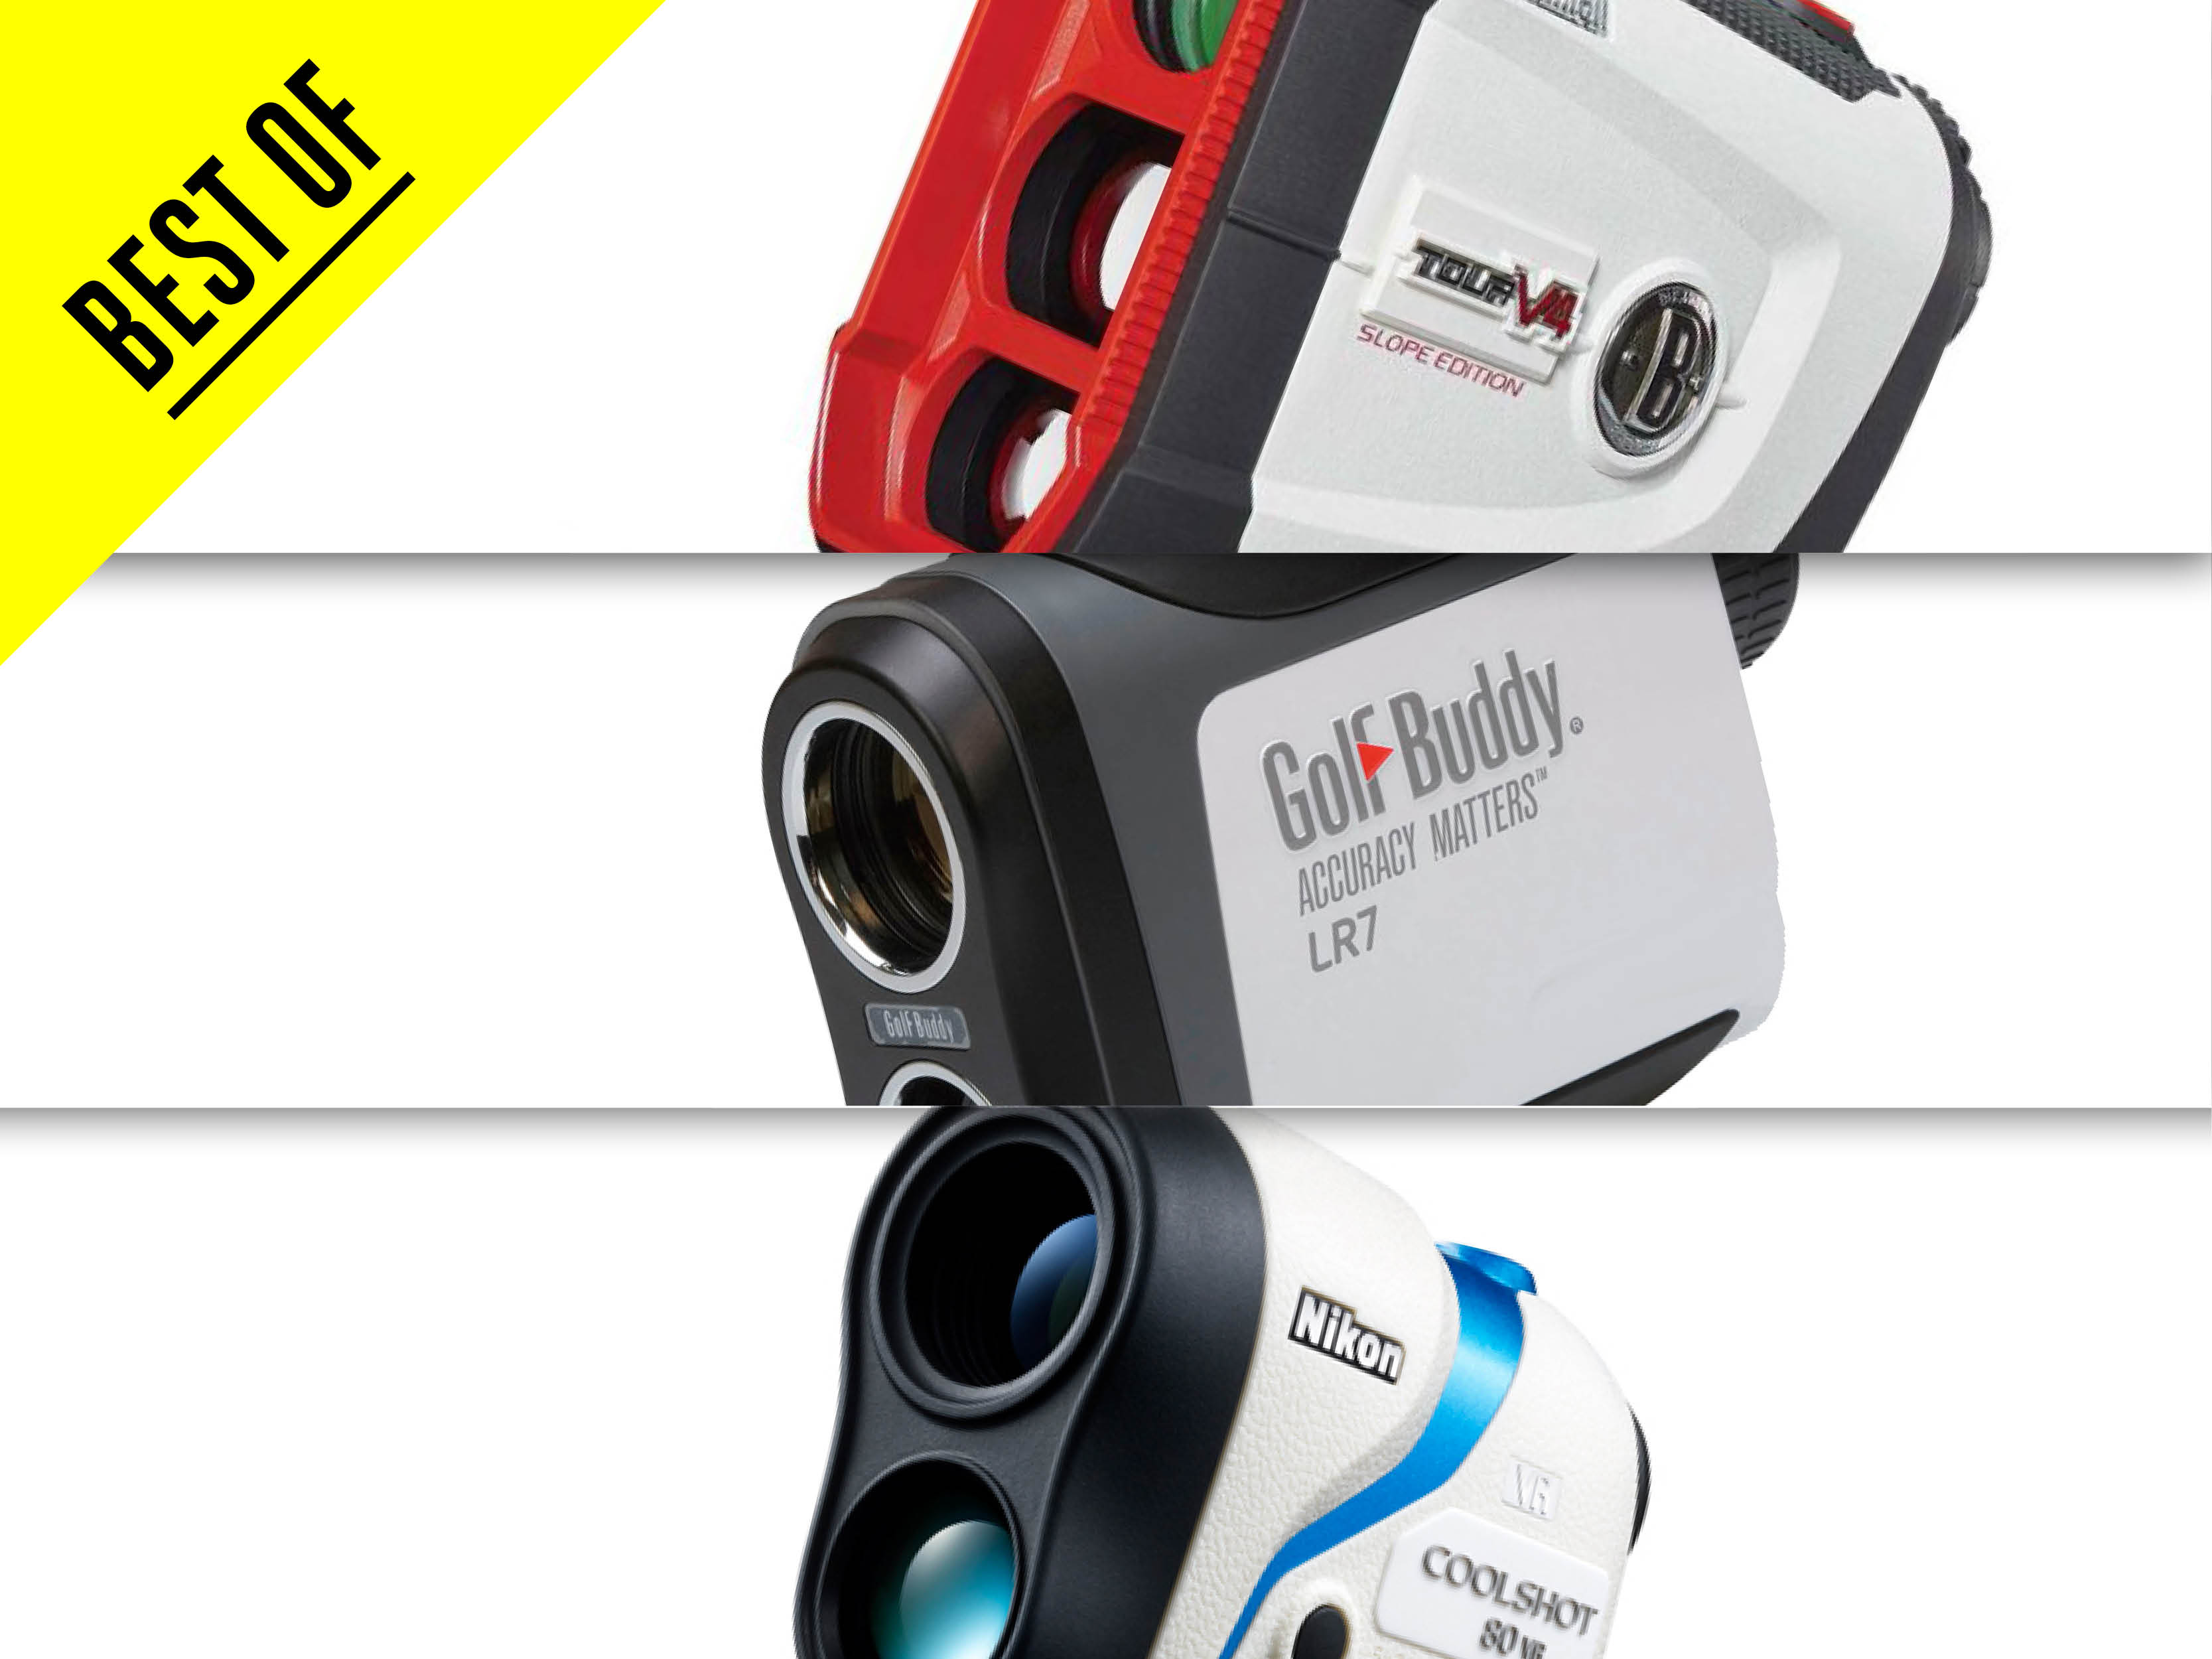 Best Laser Rangefinders 2018 - Find the right model for you